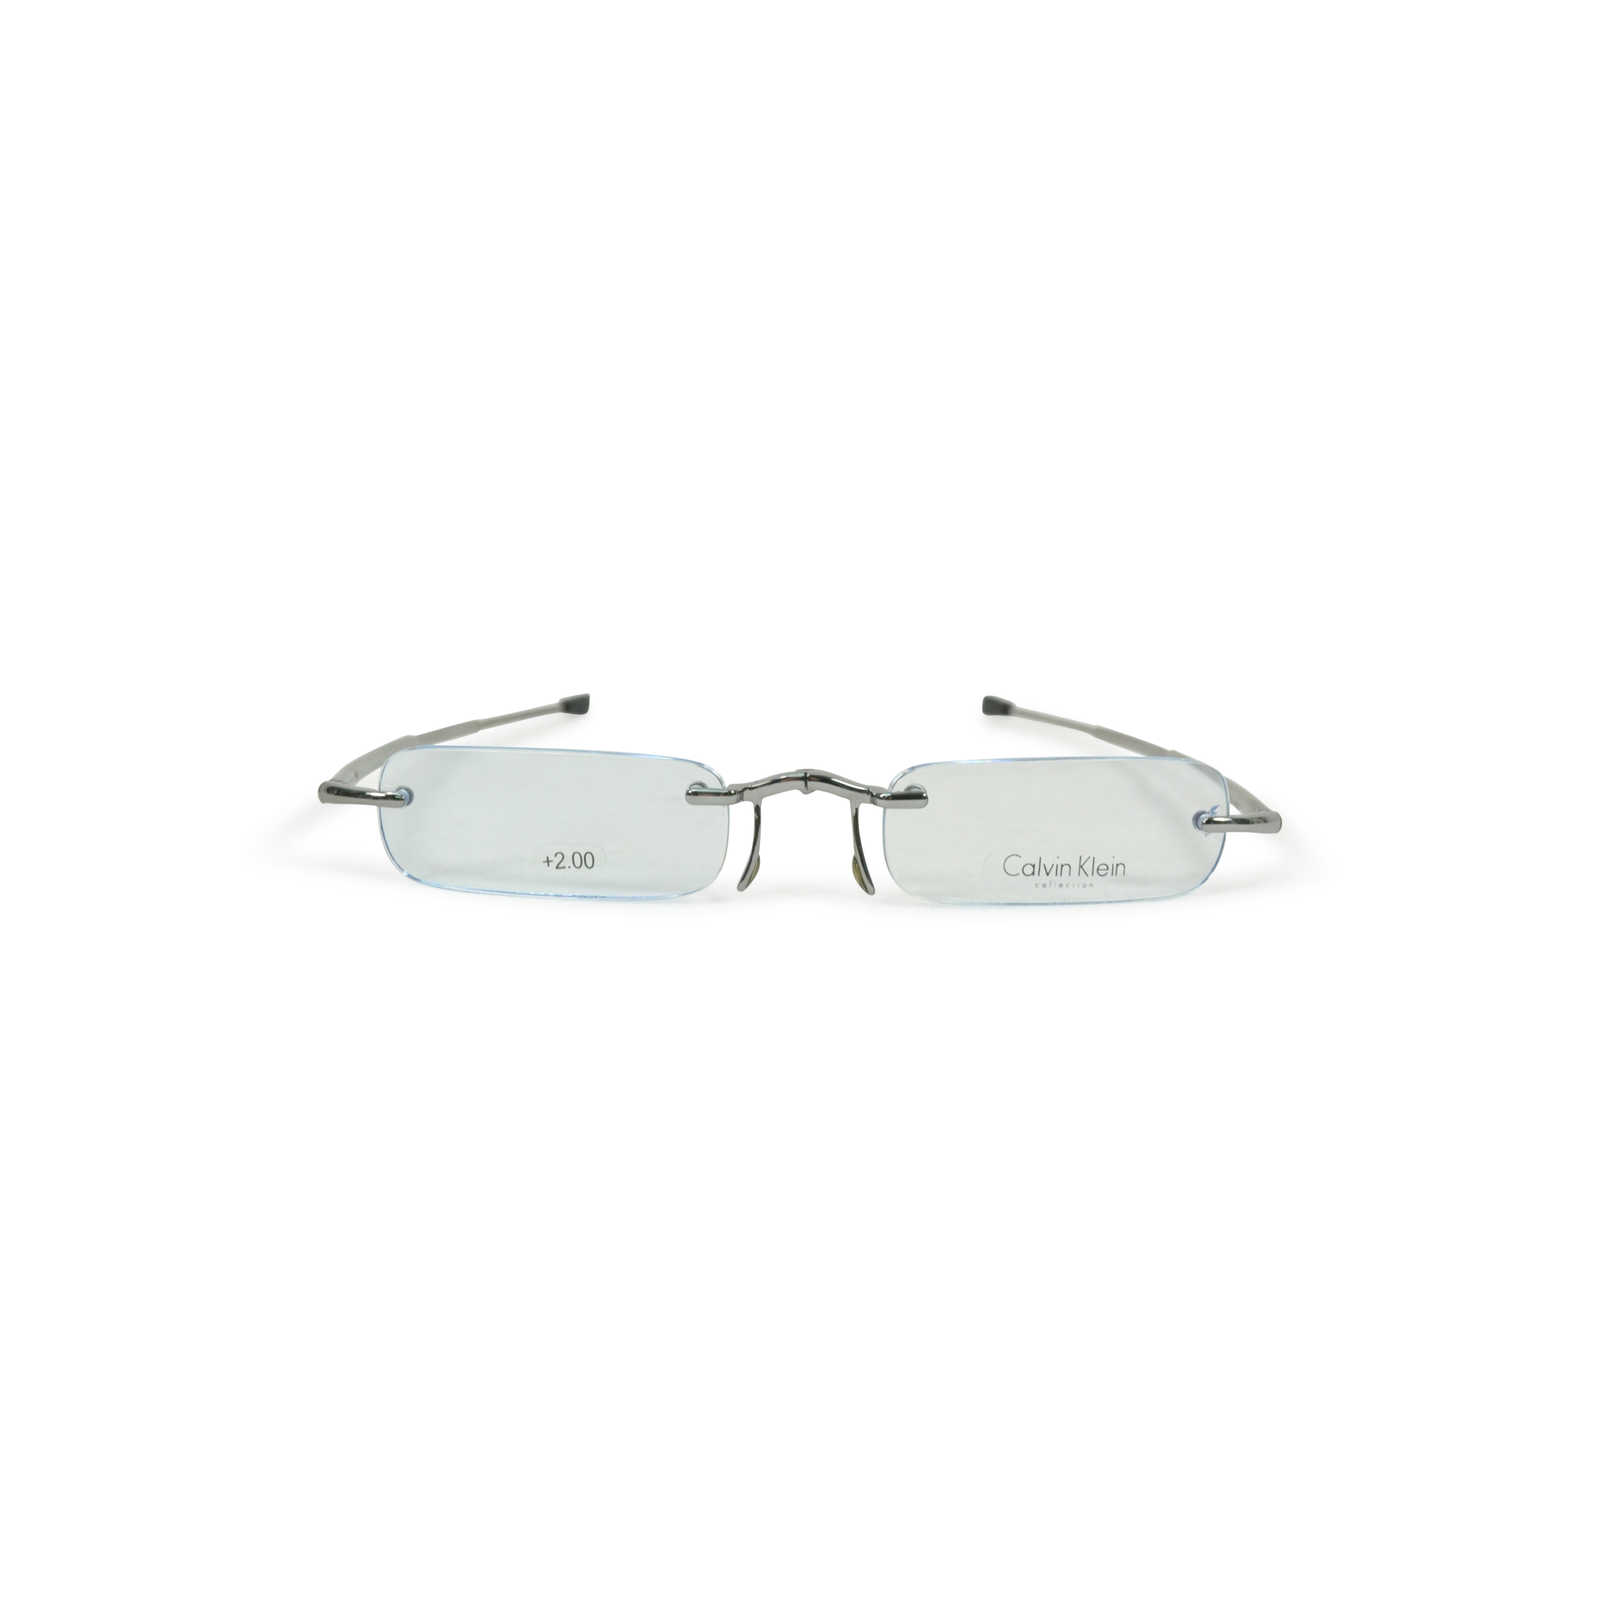 e770ea8bc9 Authentic Second Hand Ck Calvin Klein Reading Glasses Pss 246 00115